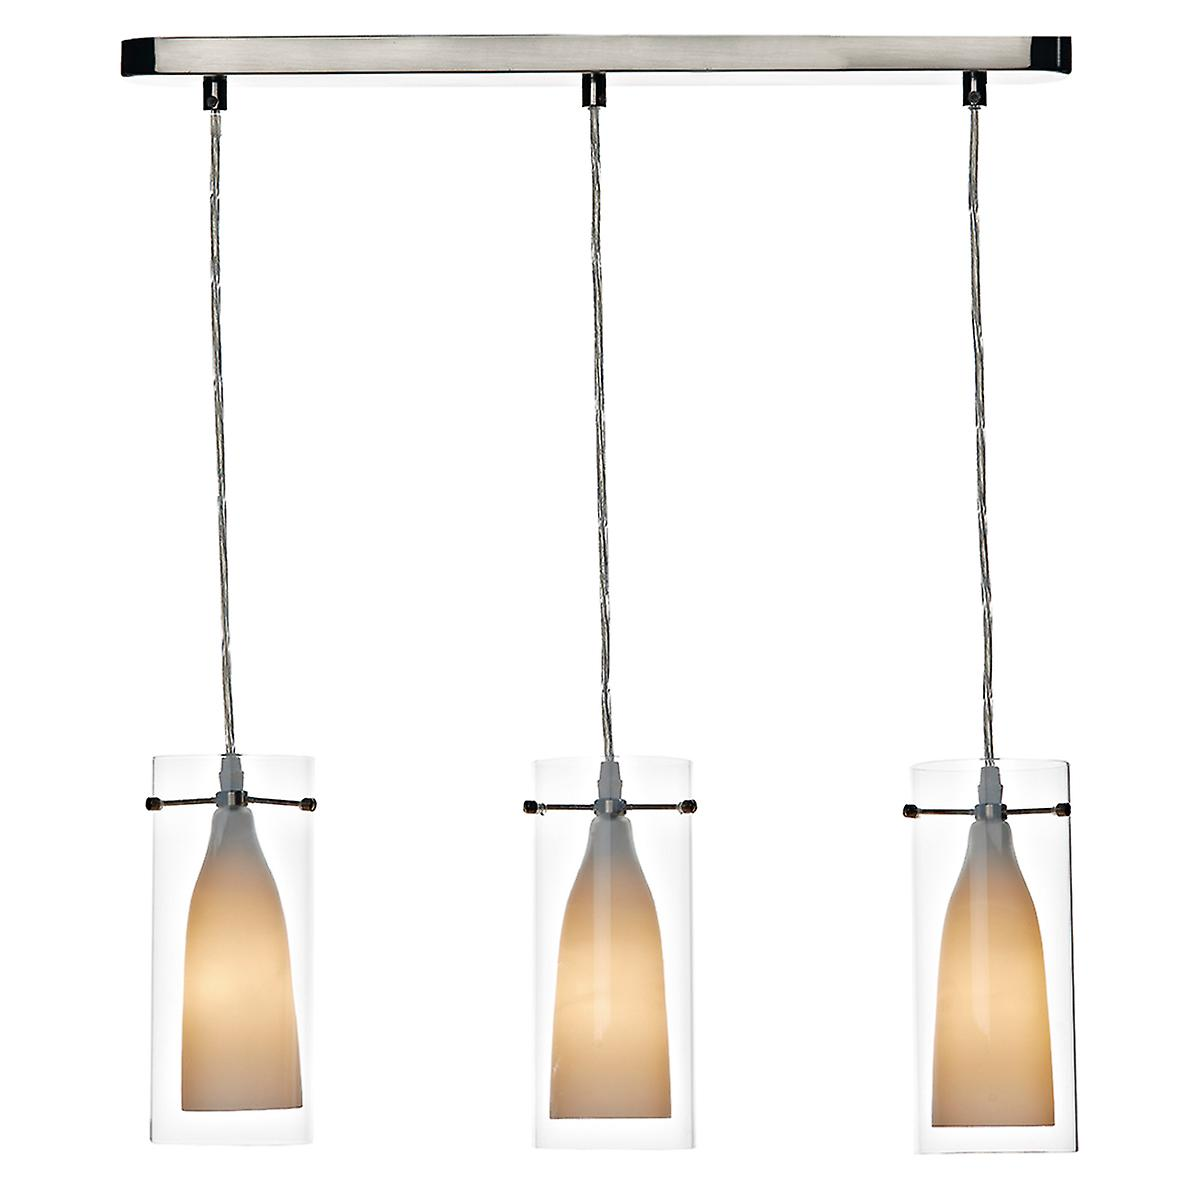 Dar BOD0346 Boda Modern 3 Light Bar Ceiling Pendant With Double Glass